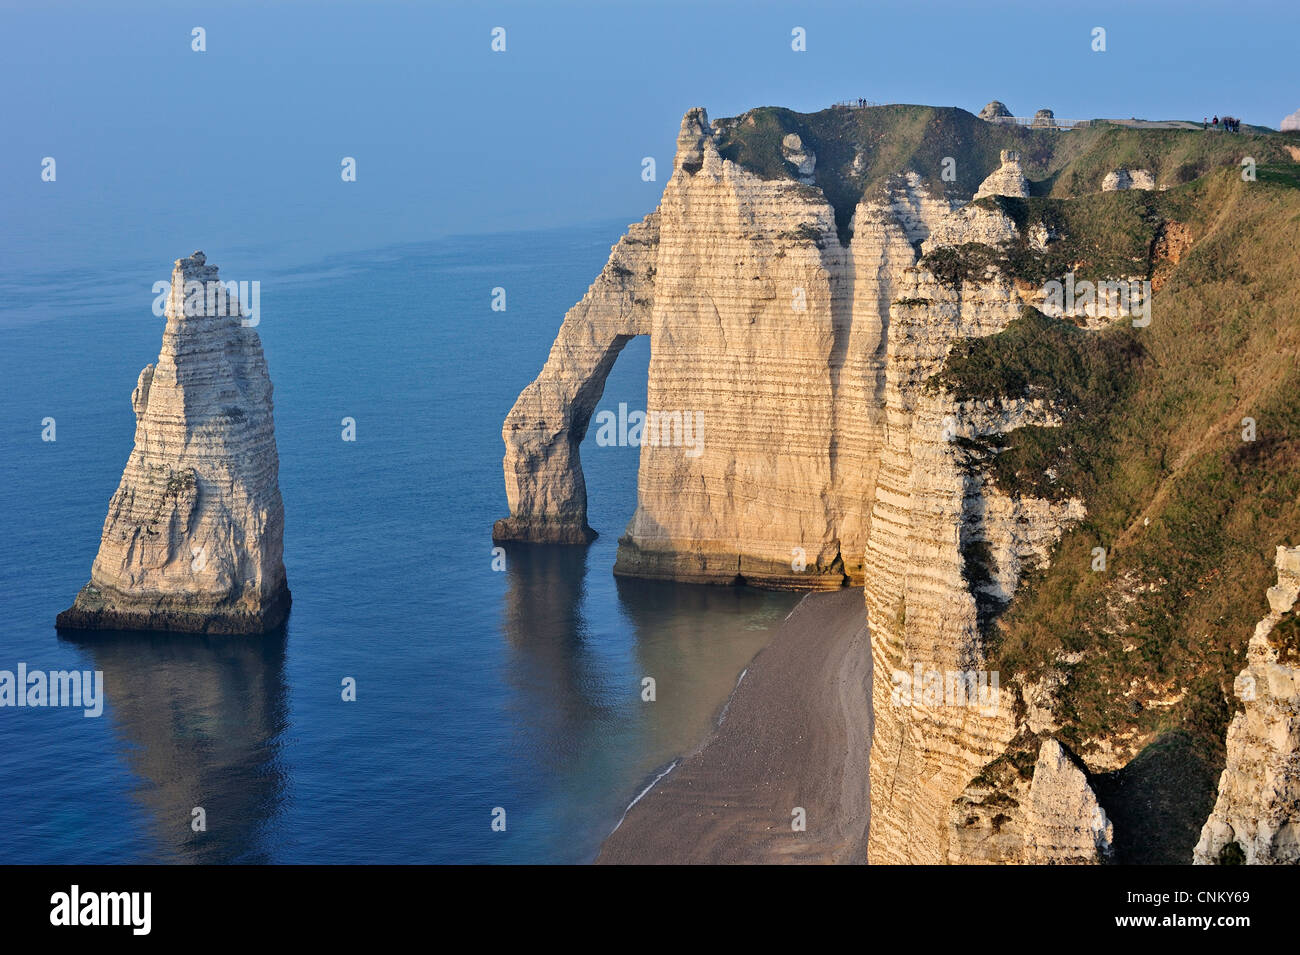 L'Aiguille and the Porte D'Aval, a natural arch in the eroded chalk cliffs at Etretat, Côte d'Albâtre, - Stock Image